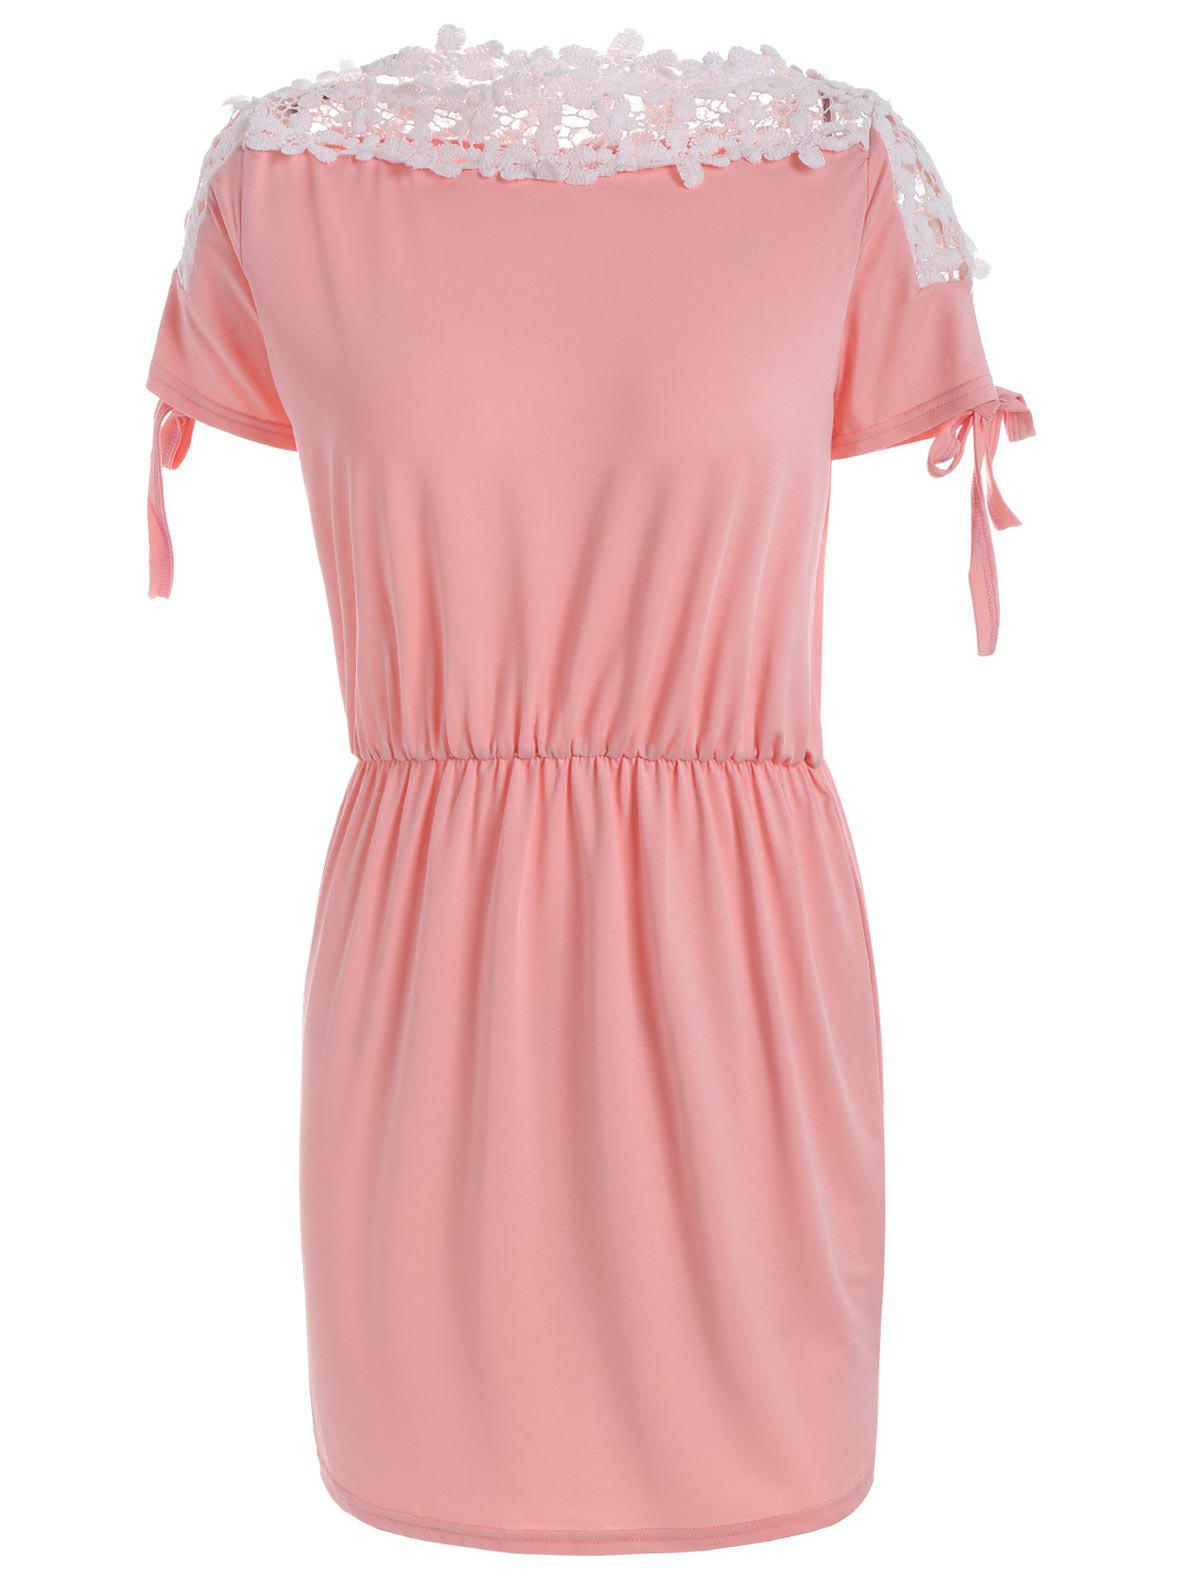 Lace Trim Boat Neck Mini Day Dress - ORANGEPINK S